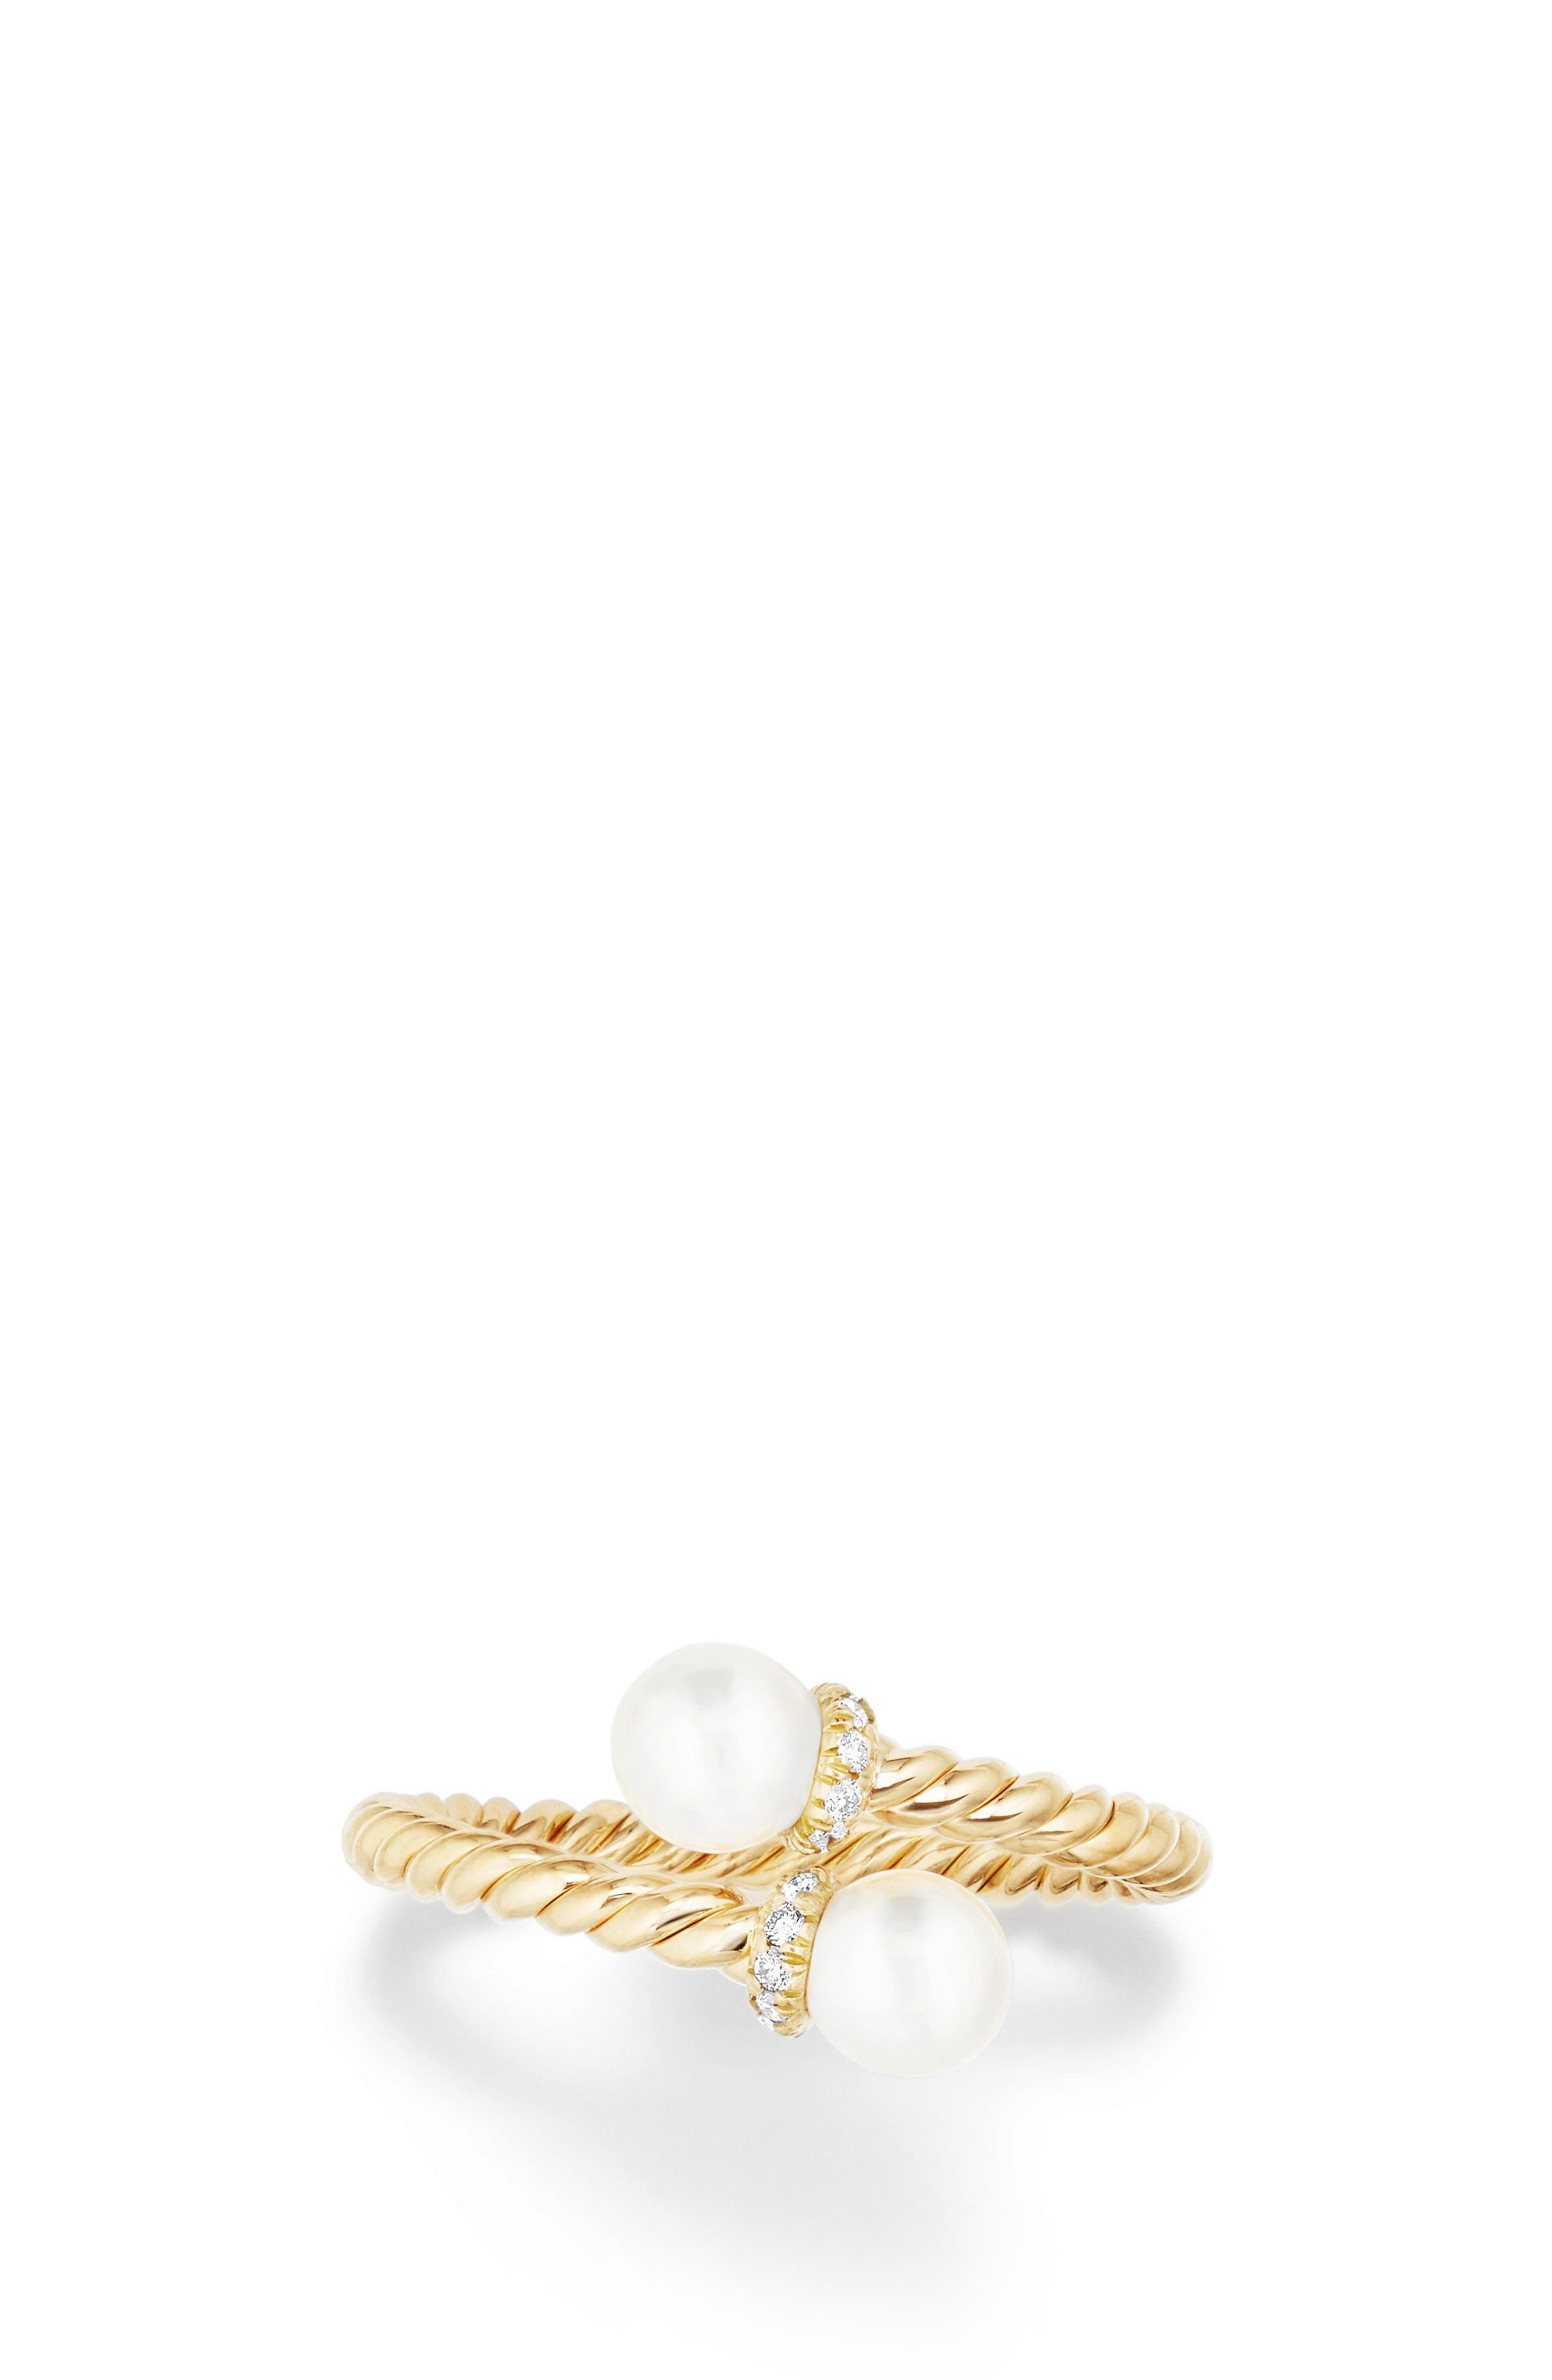 Solari Bypass Ring with Pearls & Diamonds in 18K Gold,                             Main thumbnail 1, color,                             YELLOW GOLD/ DIAMOND/ PEARL